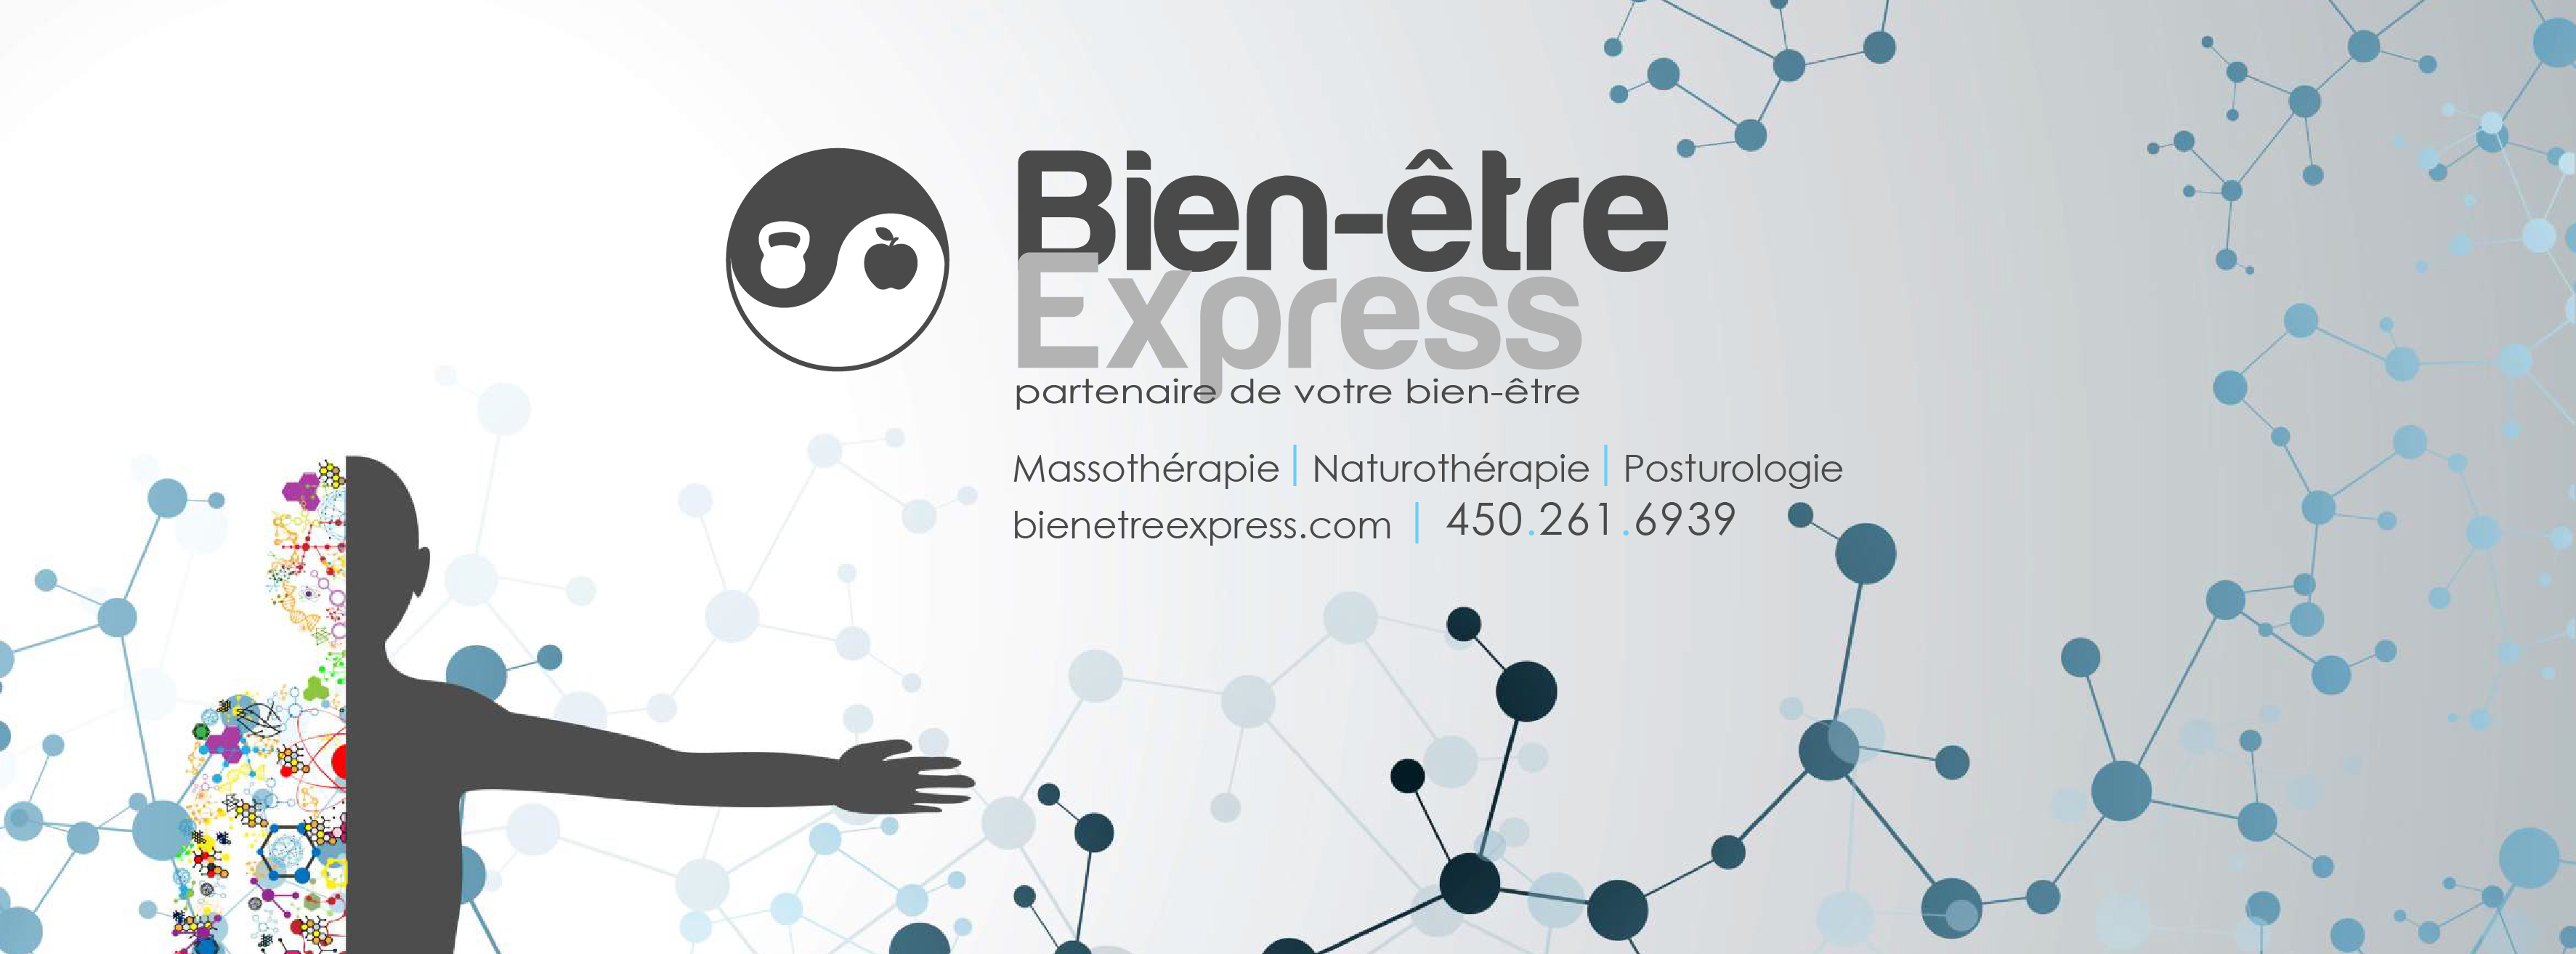 BienEtreExpress_Cover_FB_V1FEV18